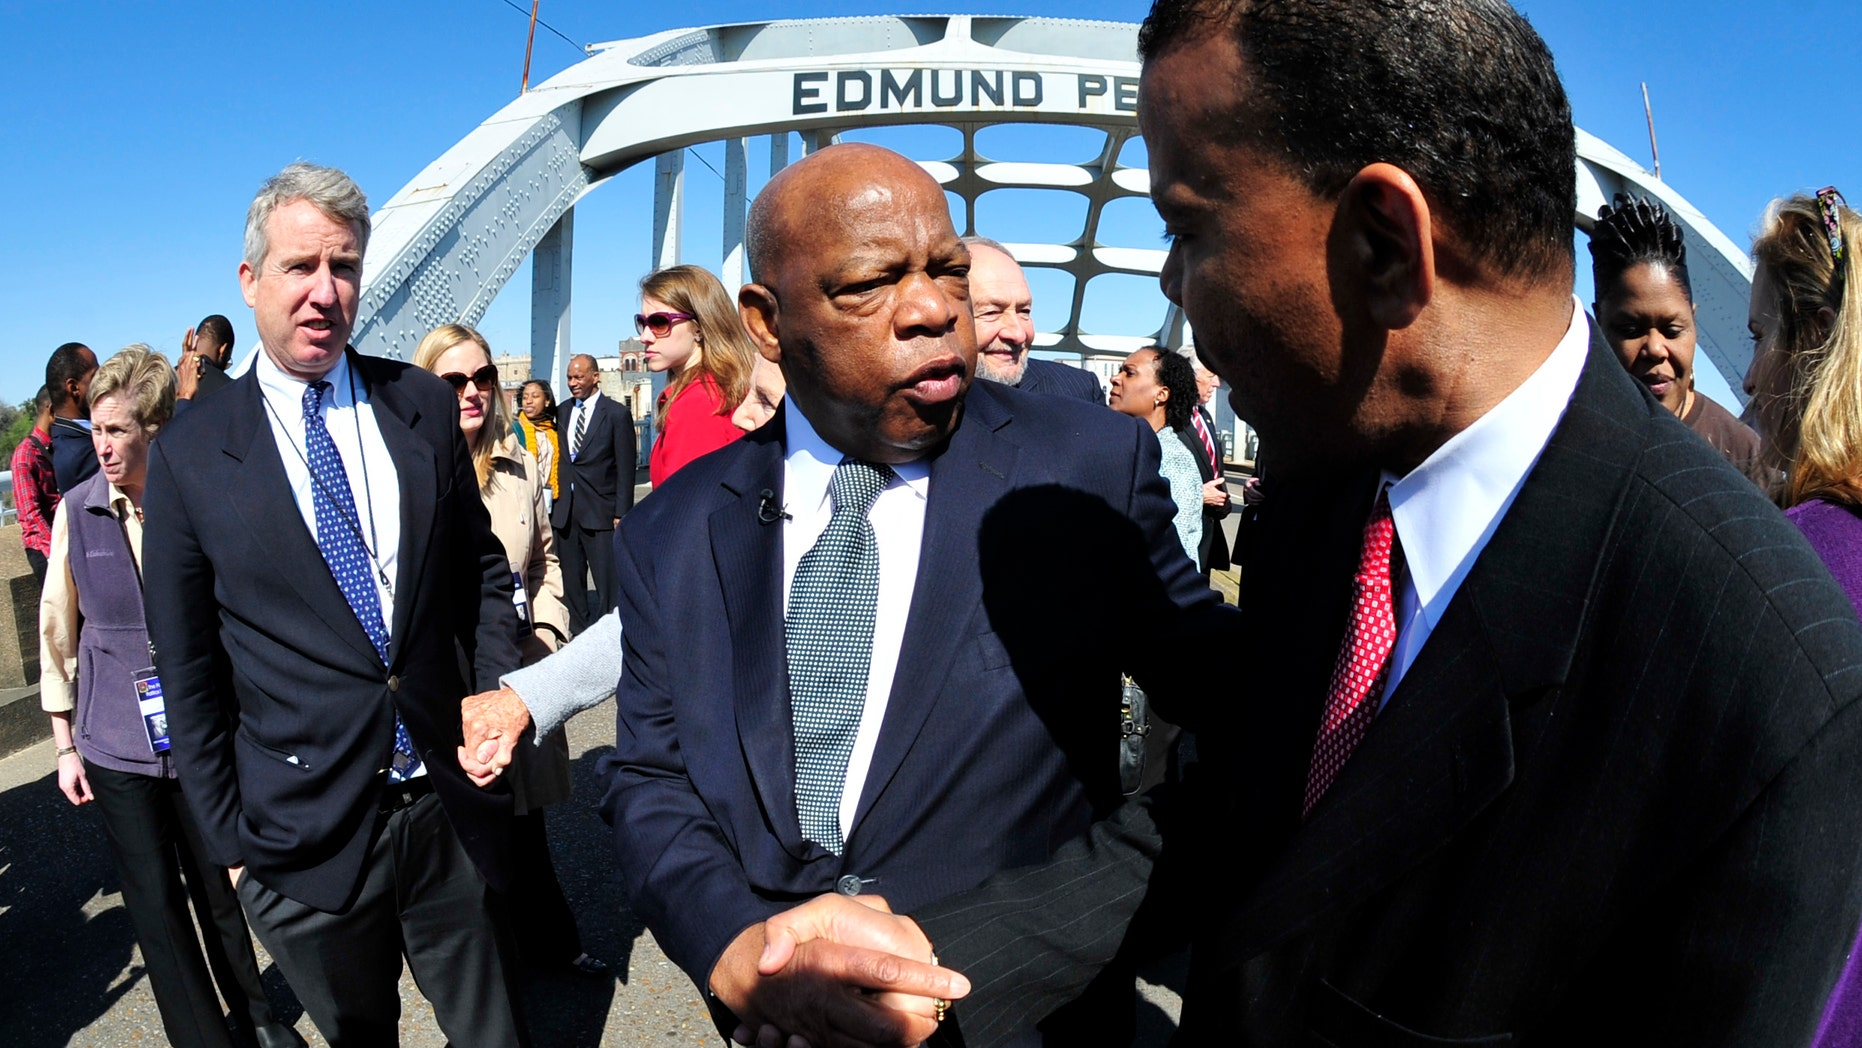 "U.S. Rep. John Lewis, D-Ga., center, is greeted by a well wisher as he pauses for a photo opportunity with members of the the Kennedy family prior to the 47th recreation of the ""Bloody Sunday"" civil rights march from Selma to Montgomery across the Edmund Pettus Bridge in Selma, Ala., Sunday, March 4, 2012. (AP Photo/Kevin Glackmeyer)"